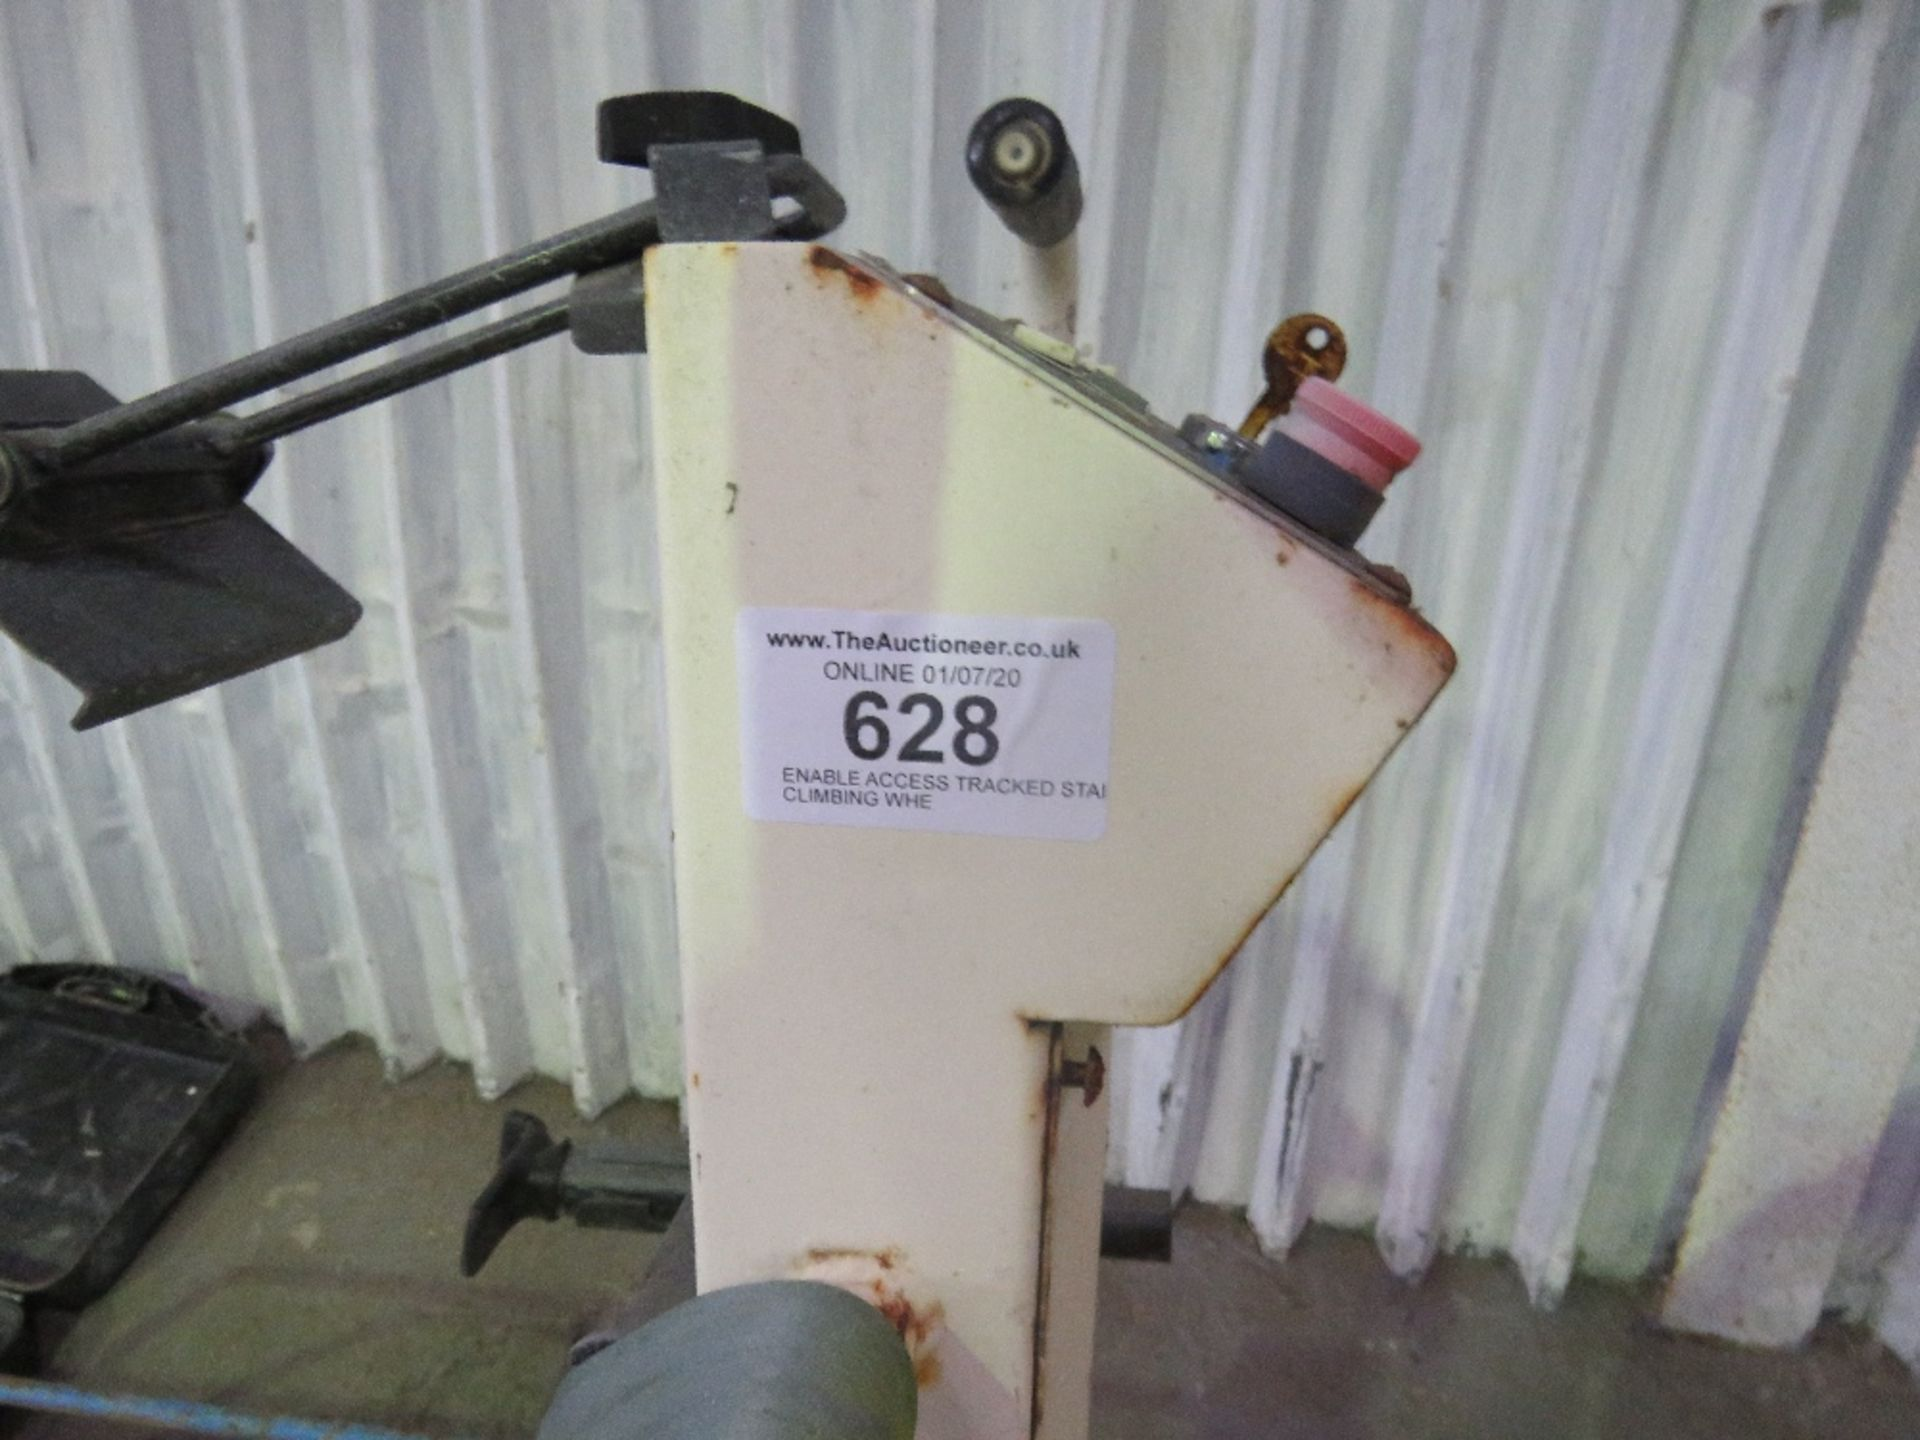 Lot 628 - ENABLE ACCESS TRACKED STAIR CLIMBING WHEEL CHAIR UNIT, CONDITION UNKNOWN